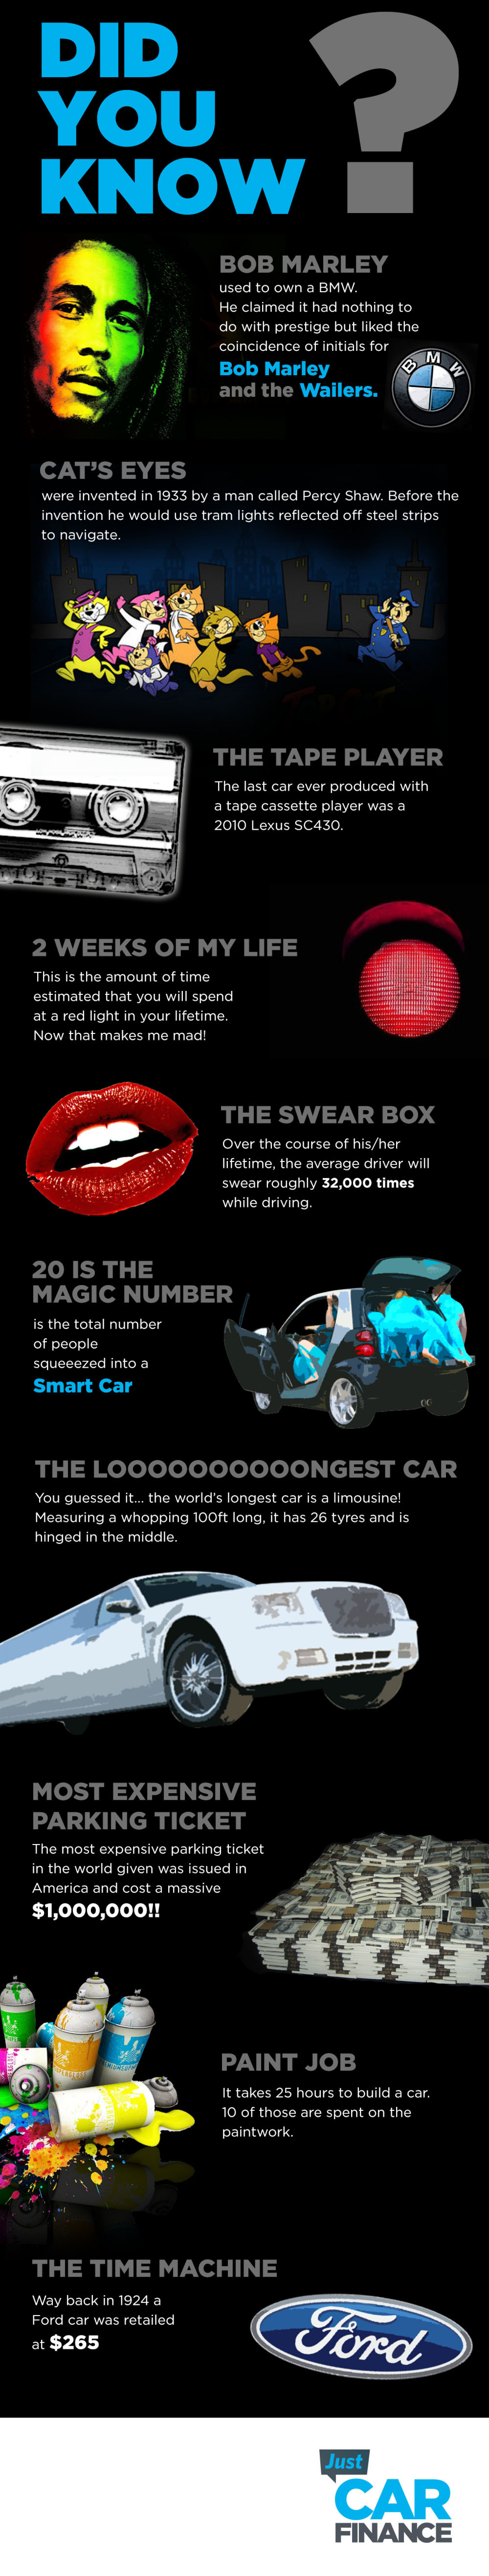 10 Fascinating Did You Knows About Cars Infographic